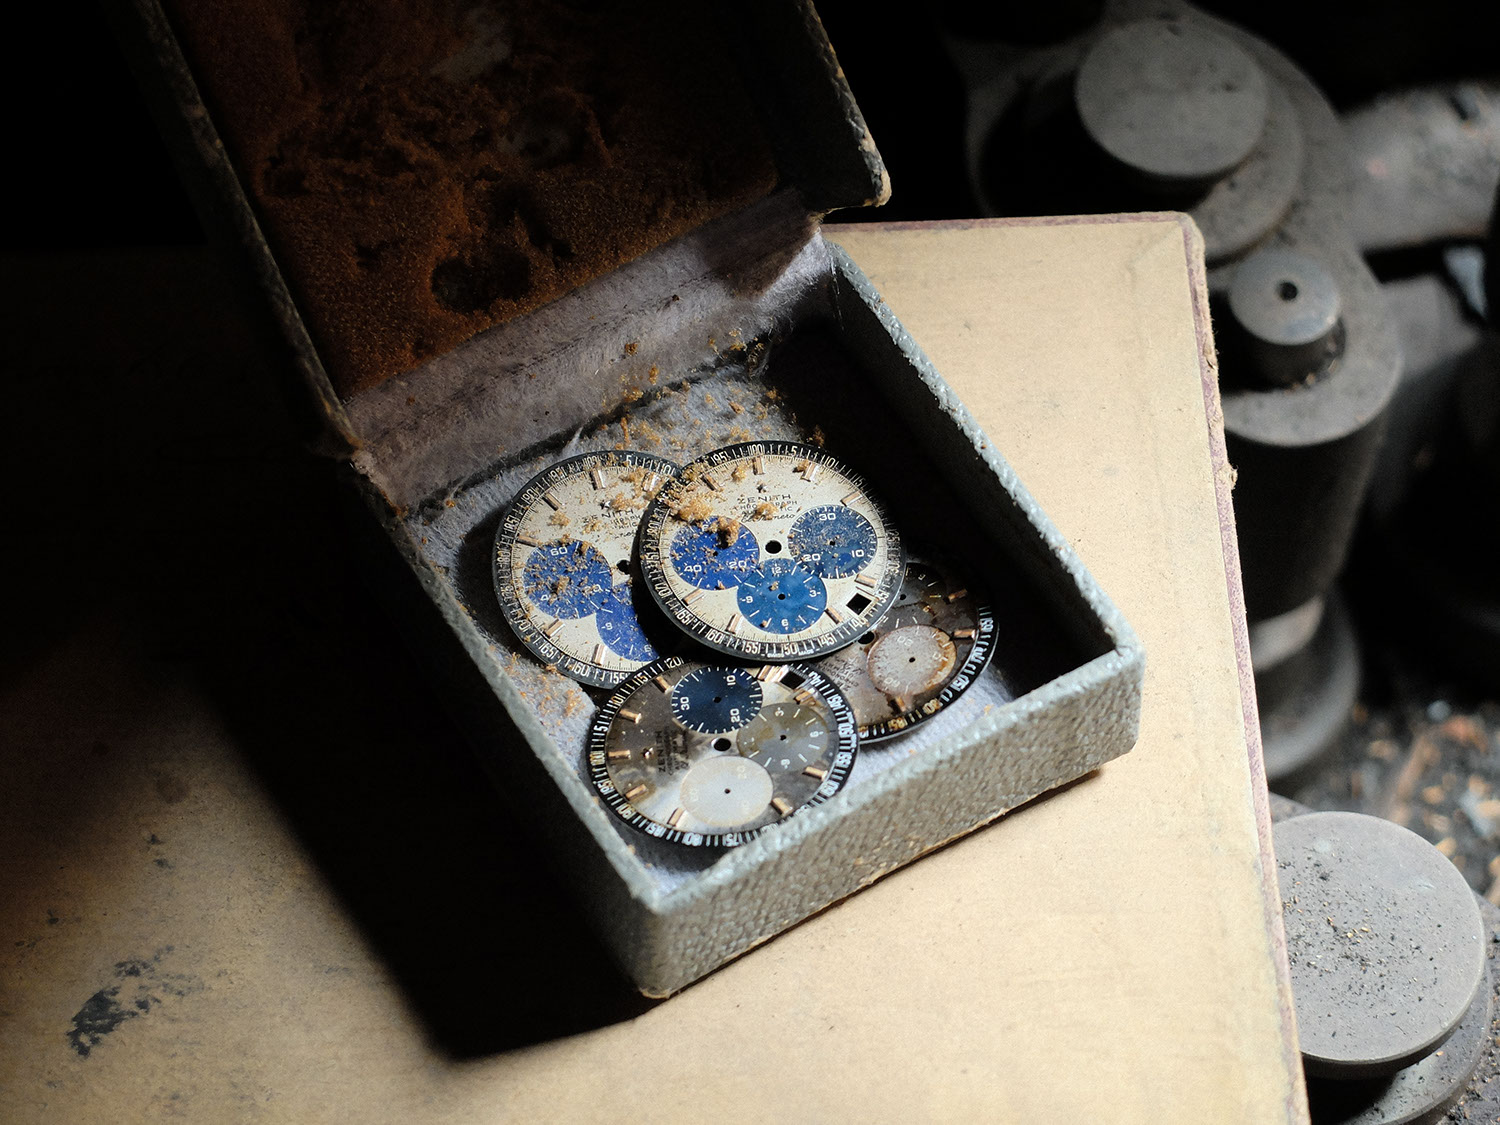 Prototype dials discovered in their famed attic from the days of Charles Vermot, which inspired the Zenith Chronomaster Revival Manufacture Edition